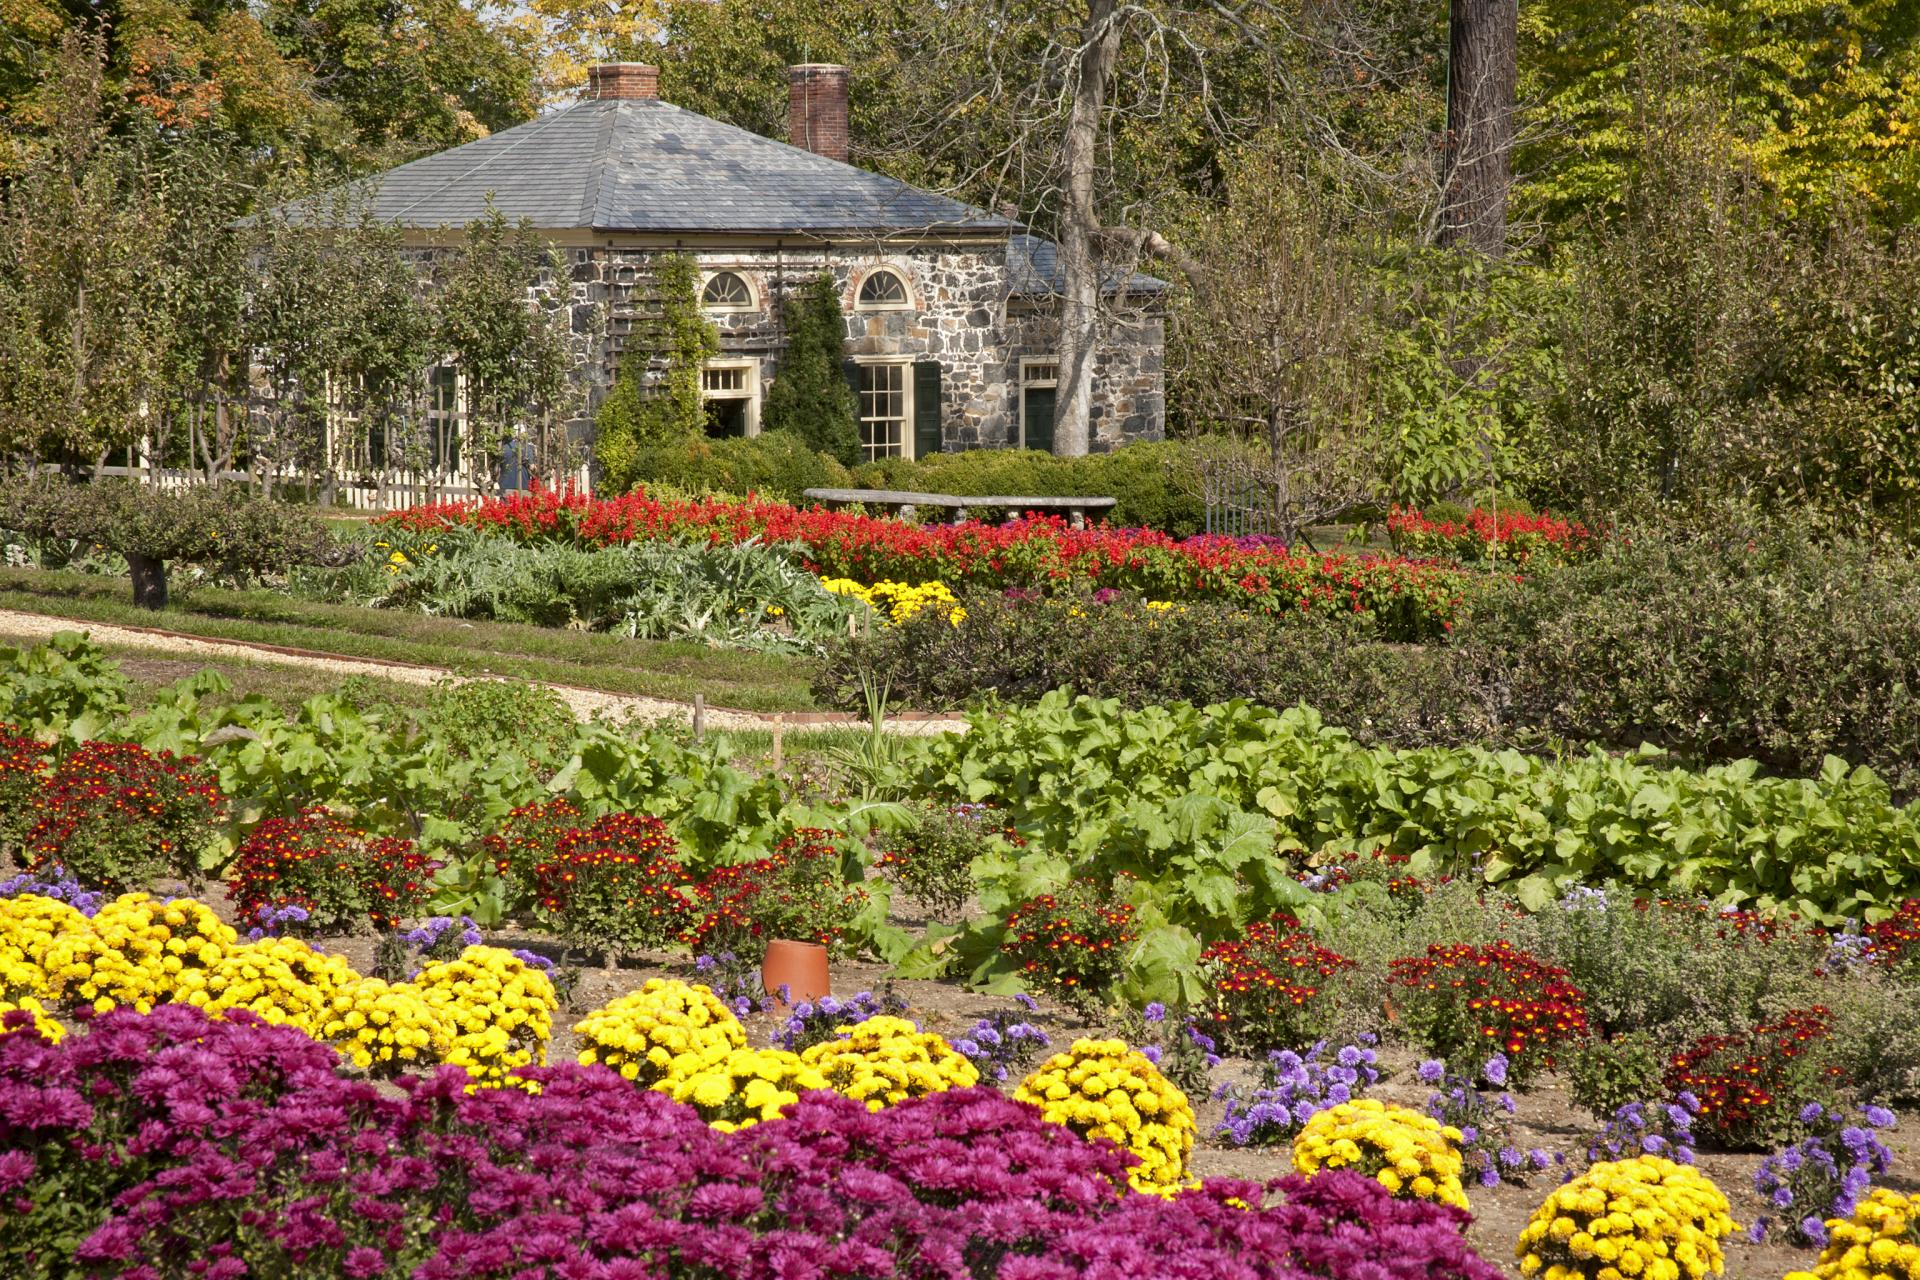 Hagley Museum And Library Joins The Association American Public Gardens Association